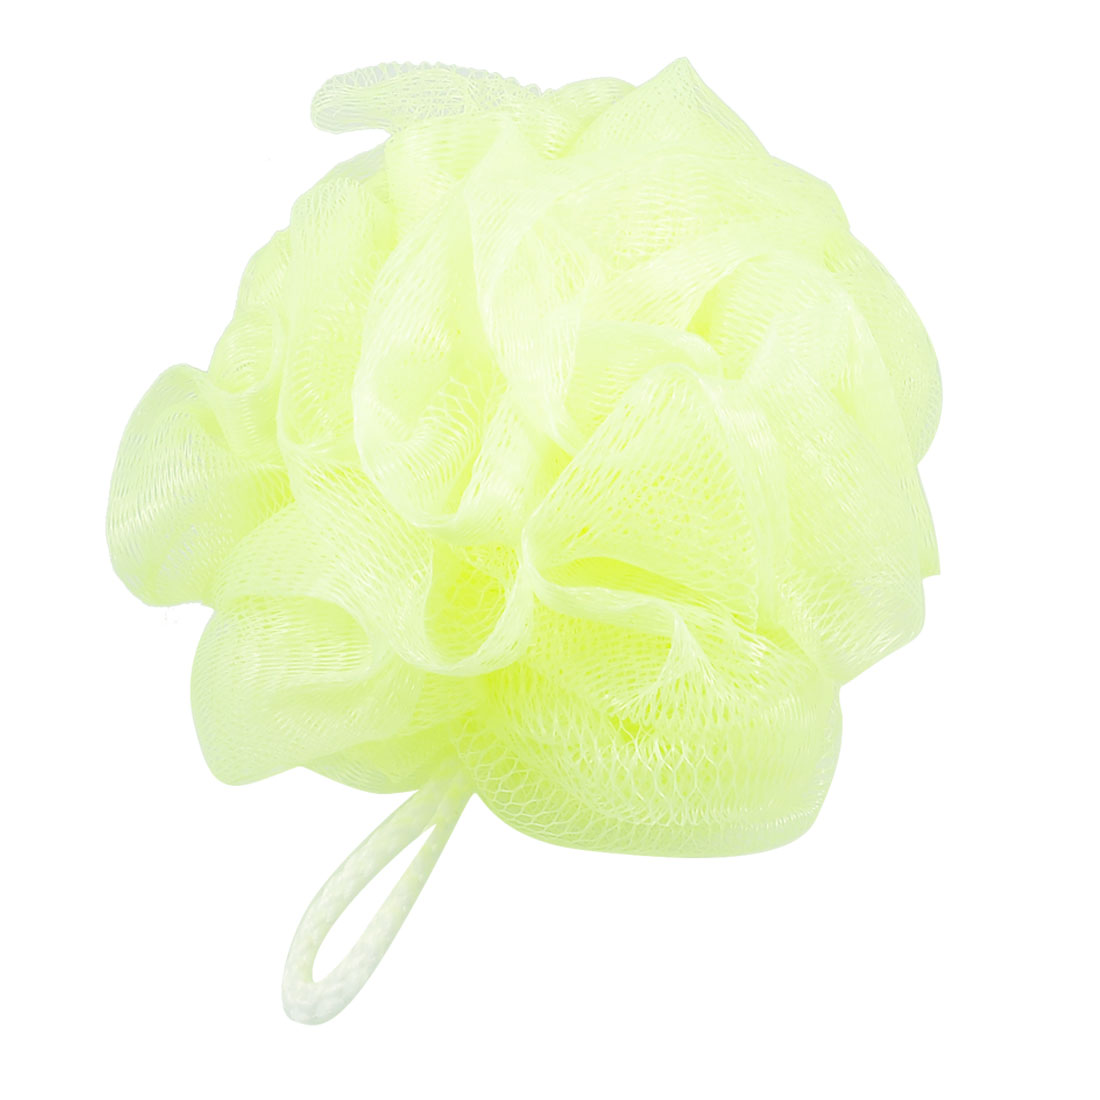 Household Nylon Bath Lather Scrubber Shower Pouf Body Cleaner Yellowgreen